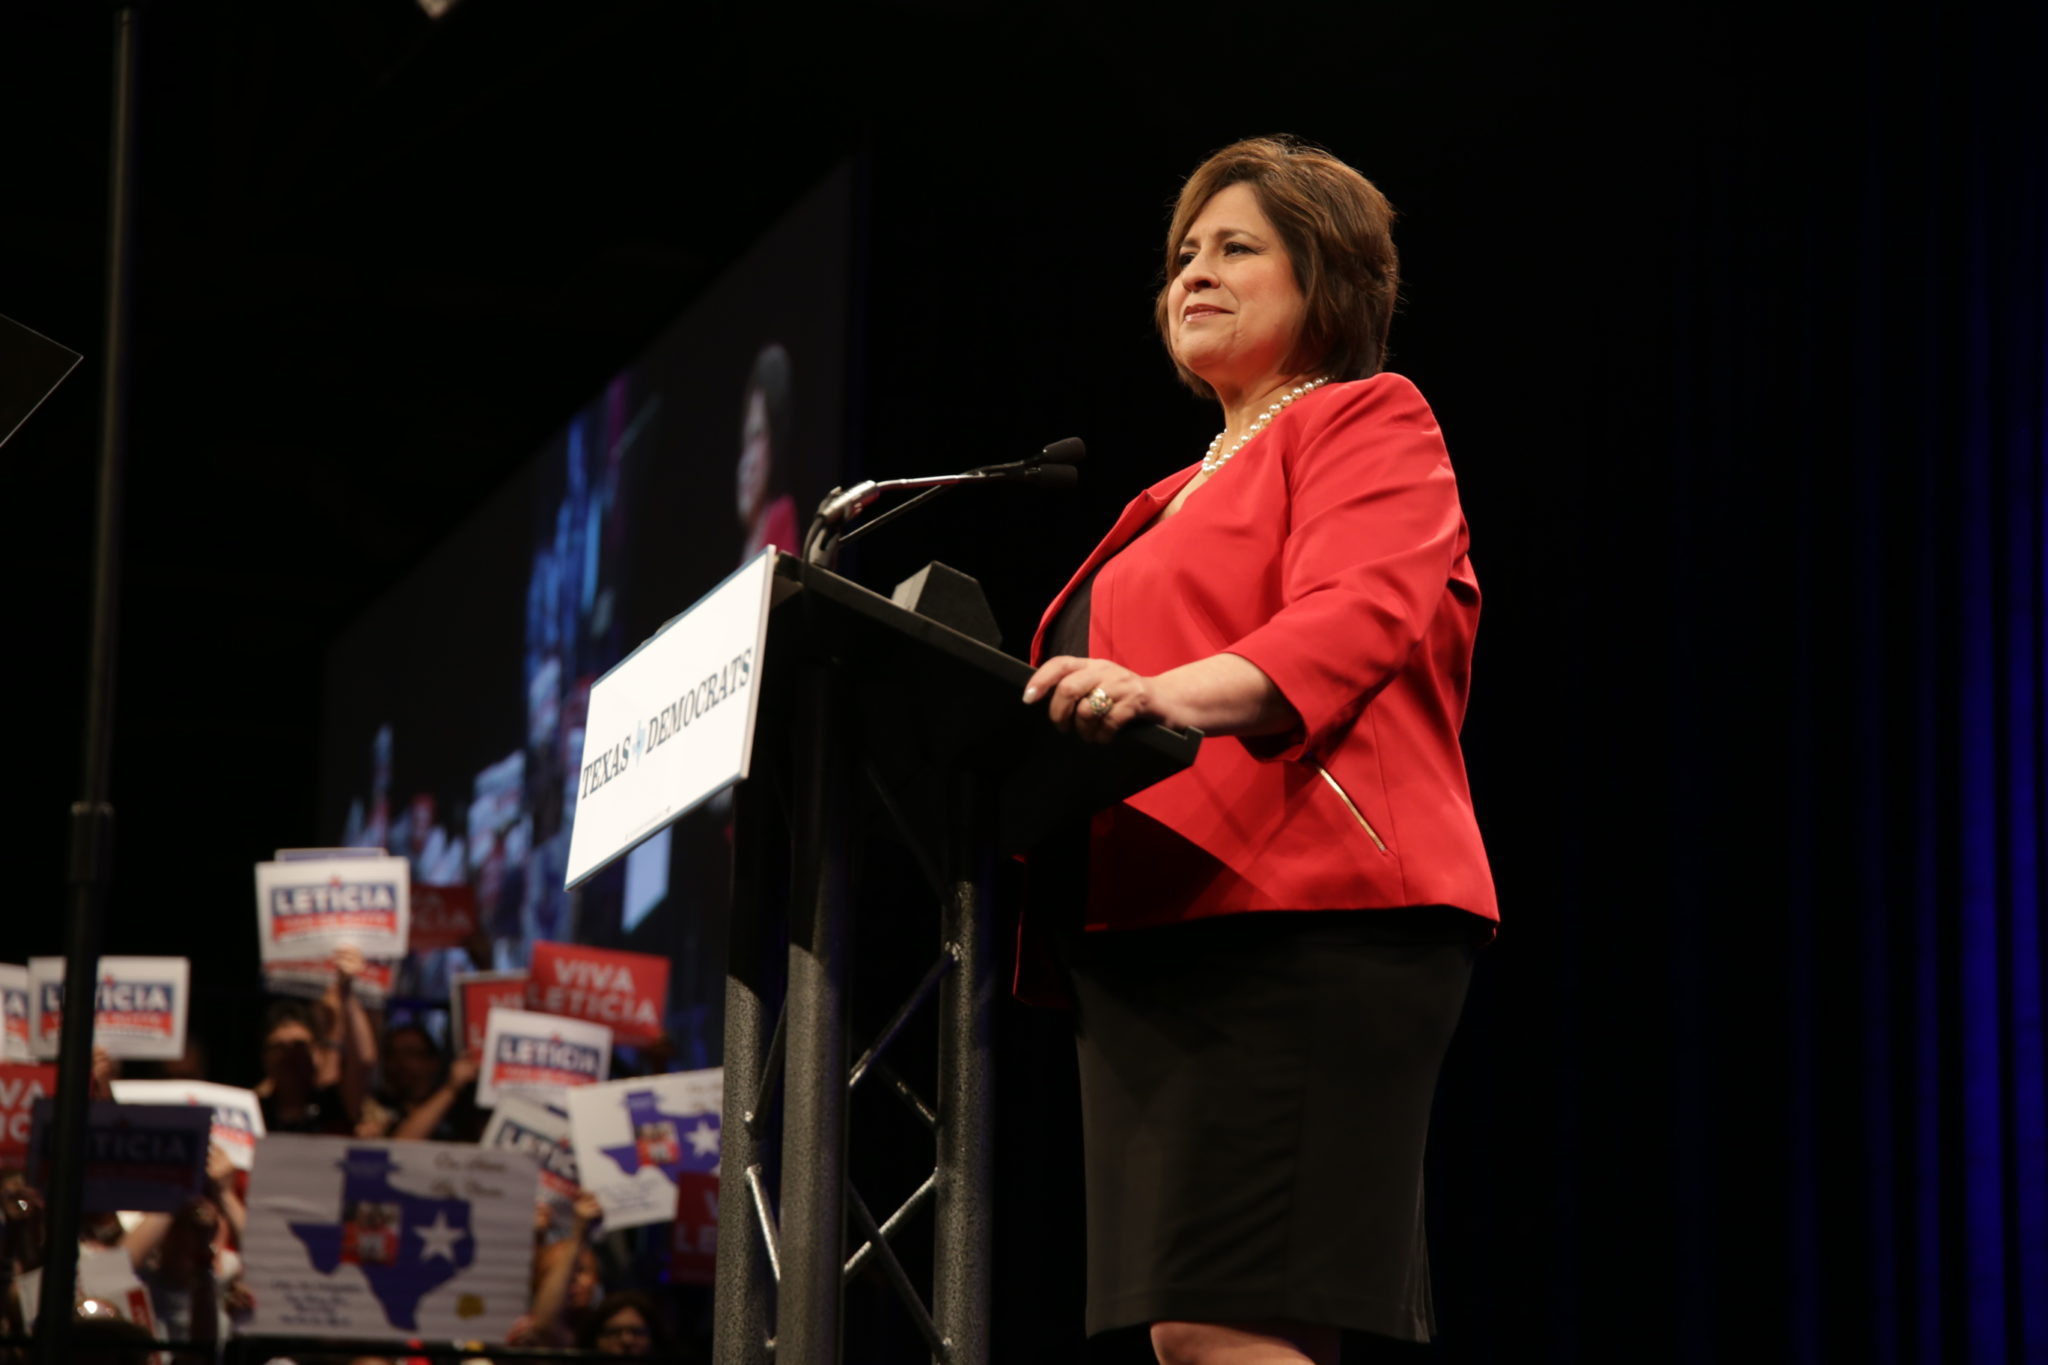 State Sen. Leticia Van de Putte speaks at the 2014 Democratic state convention in Dallas.